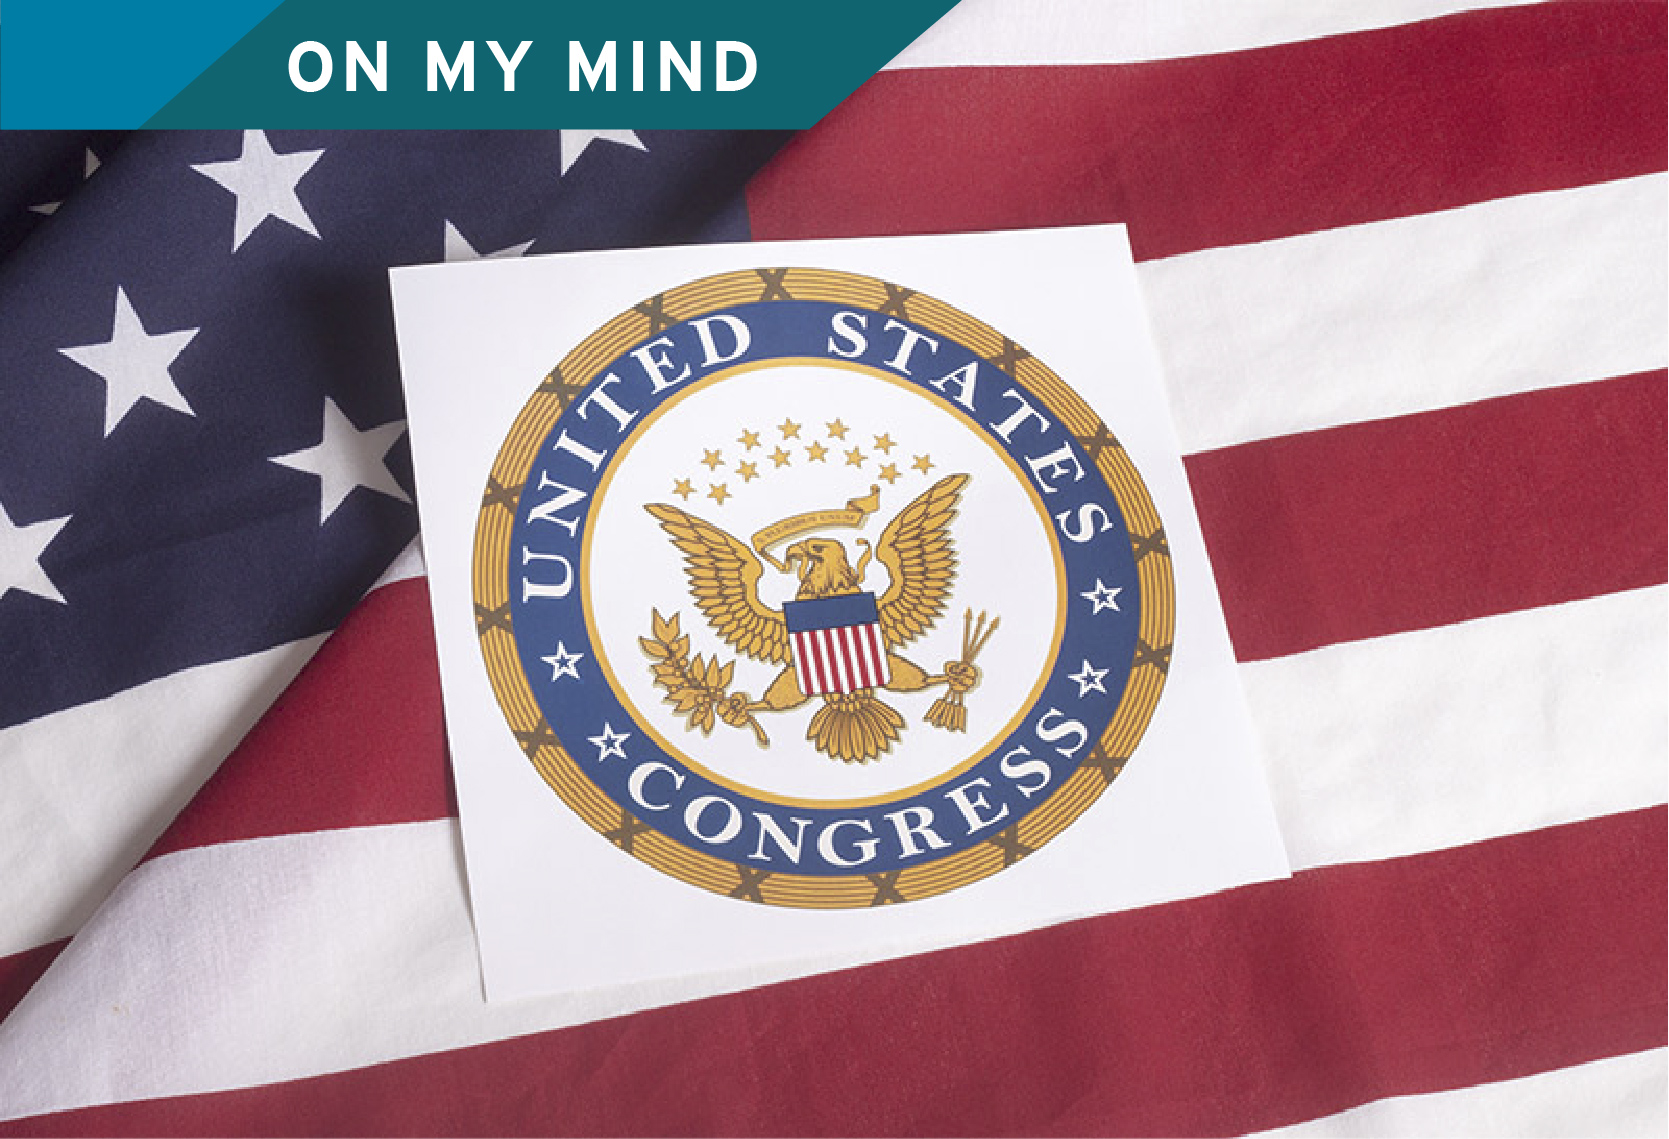 U.S. Congress- On My Mind